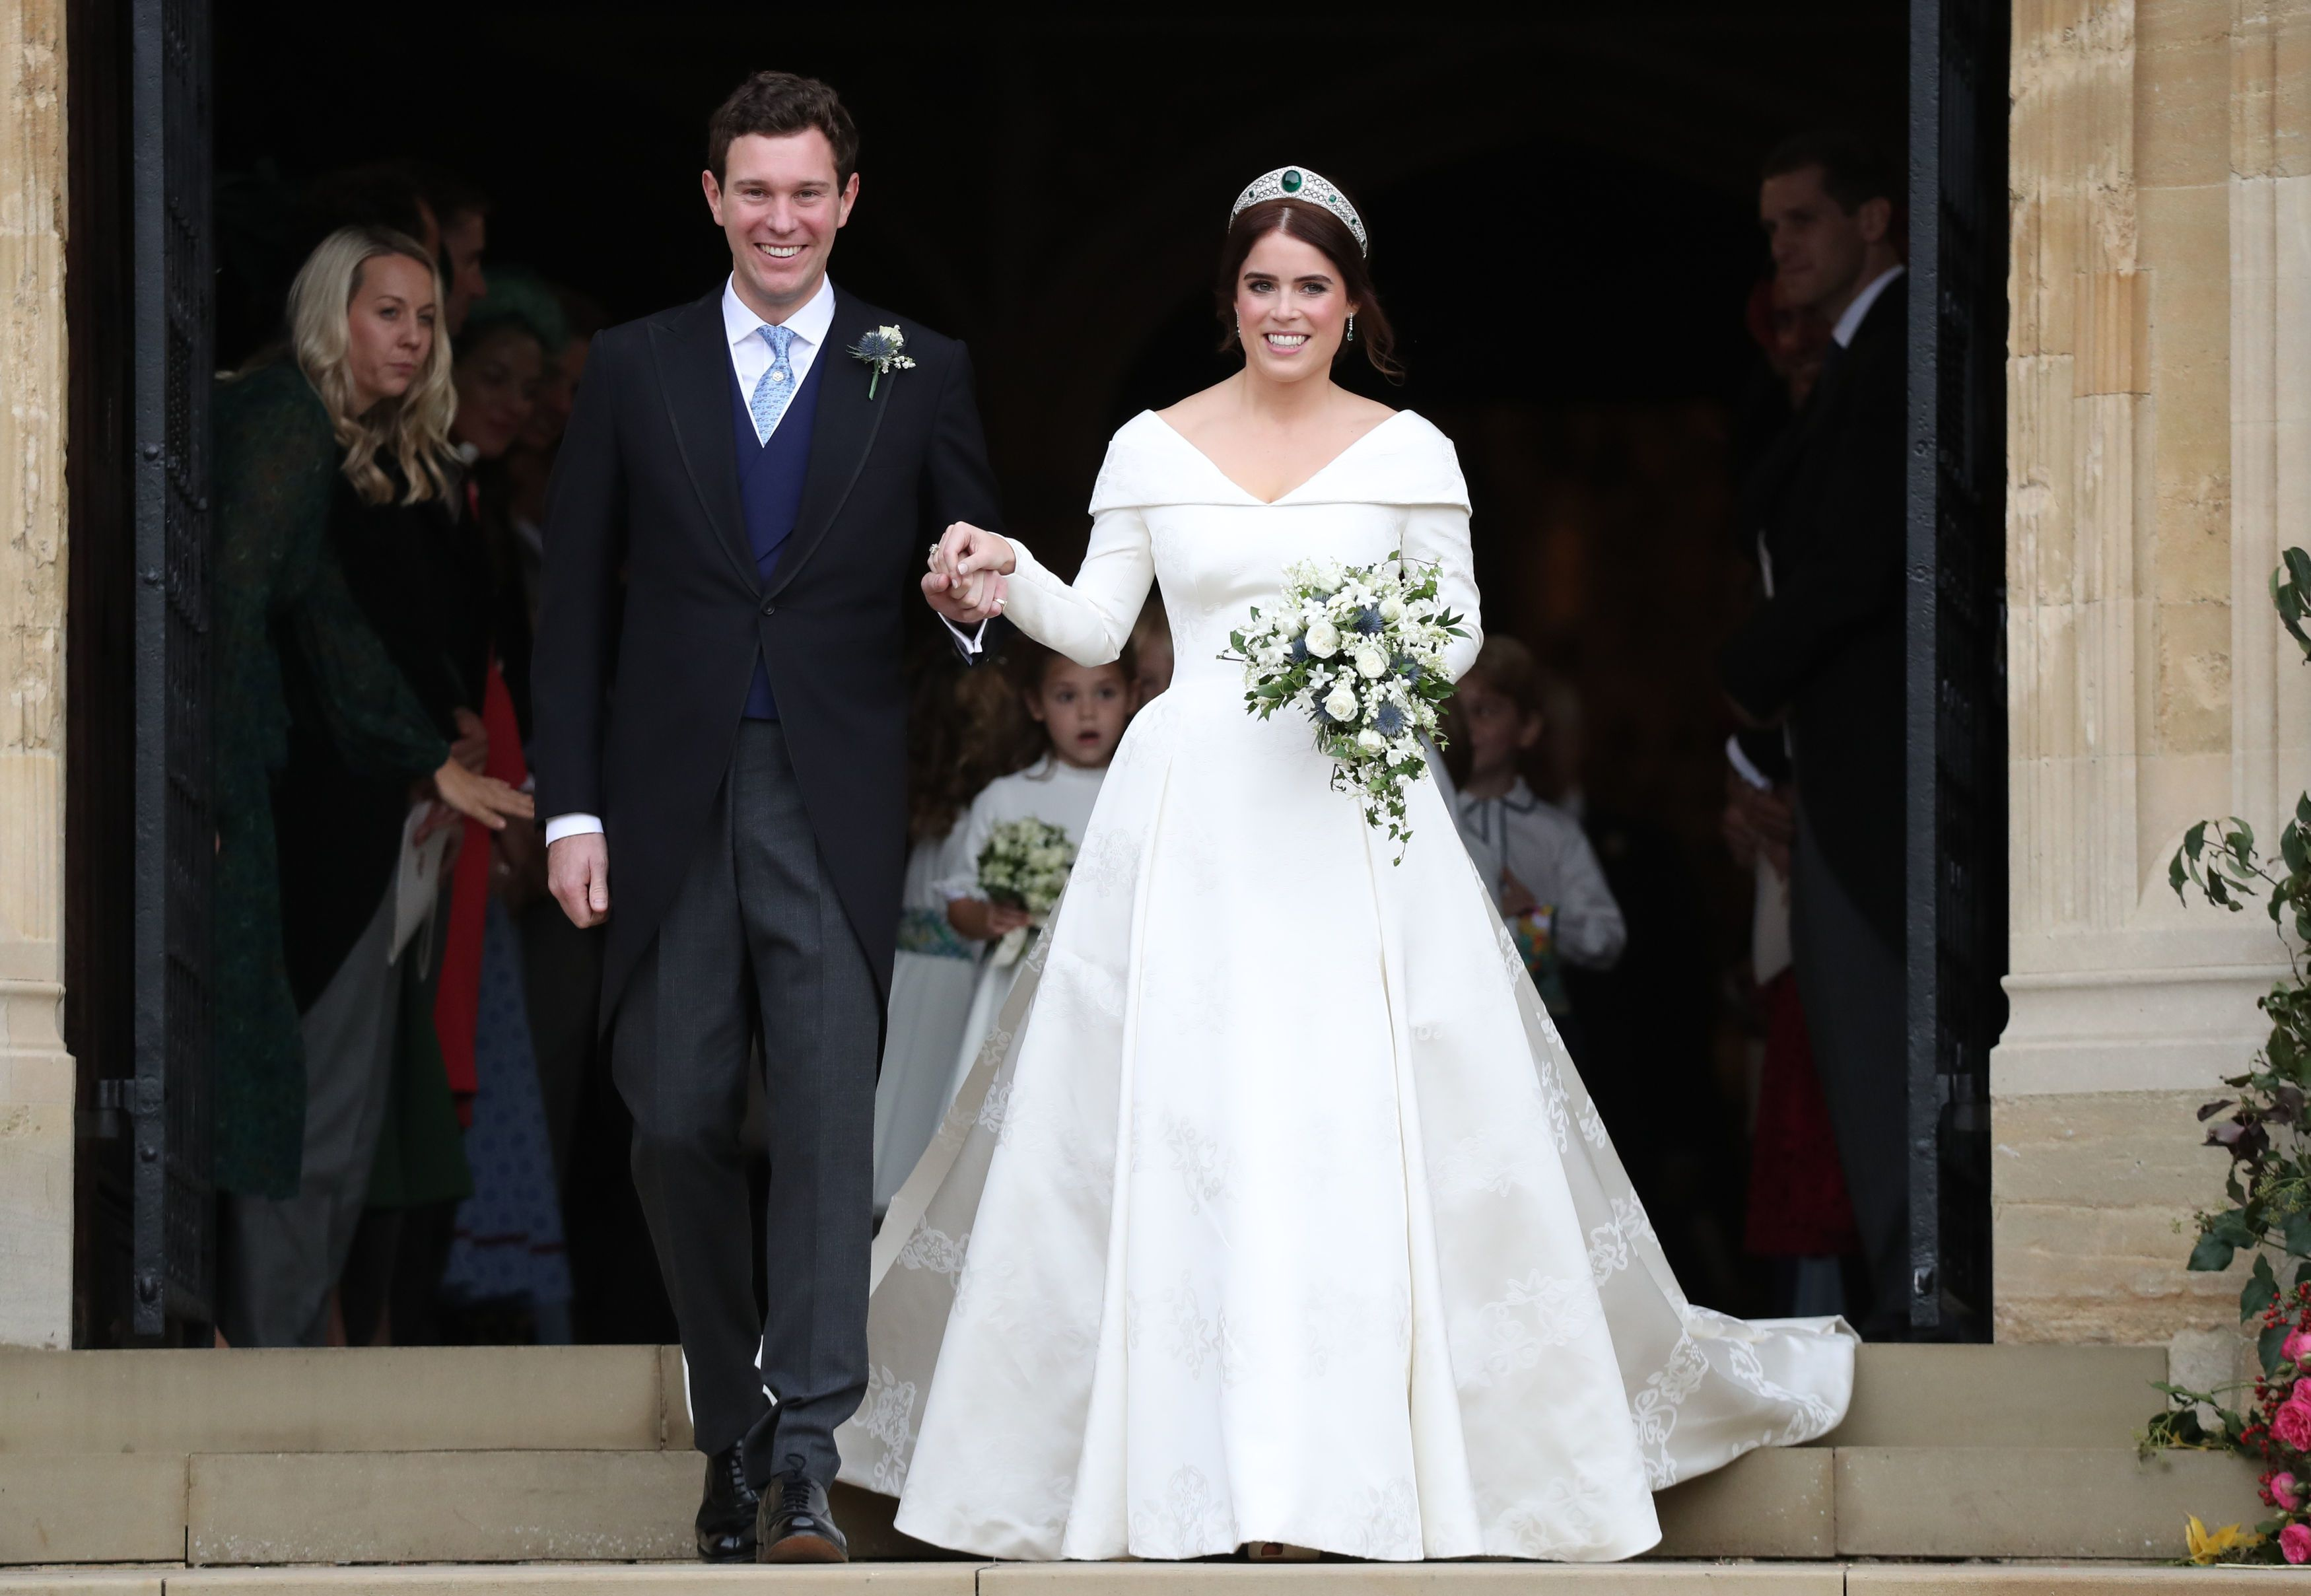 Princess Eugenie & Jack Brooksbank Wedding News - Details on the